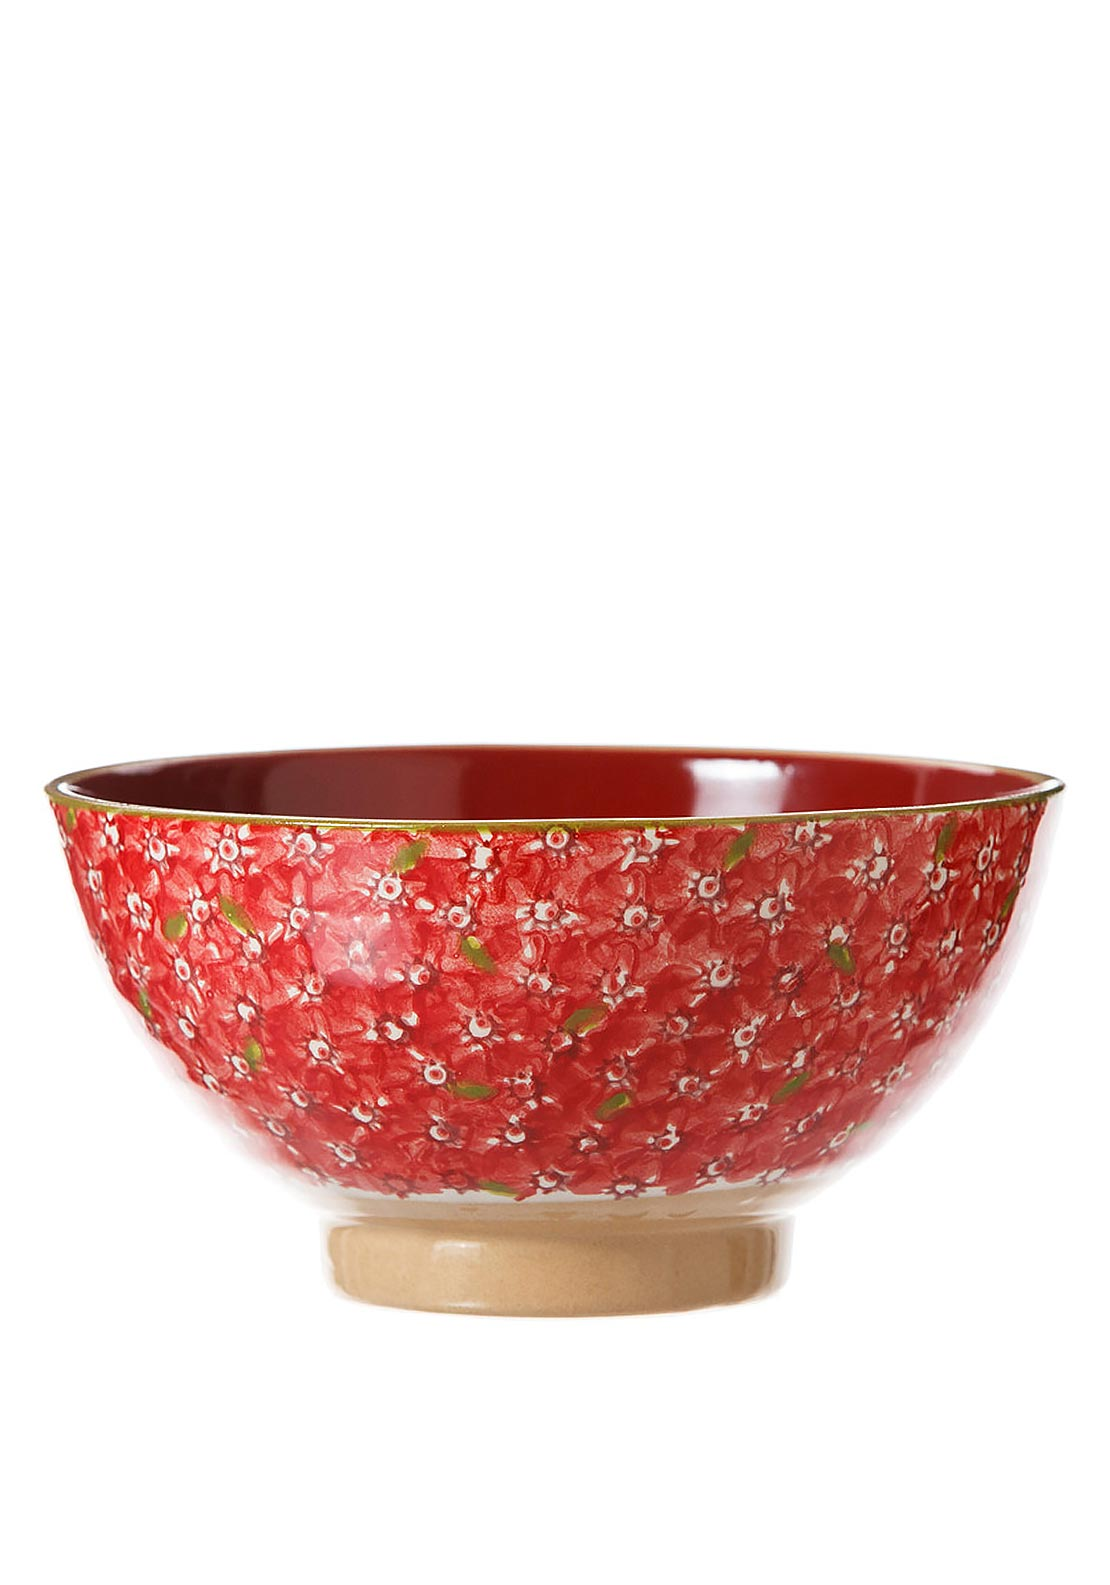 Nicholas Mosse Pottery Red Lawn Vegetable Bowl